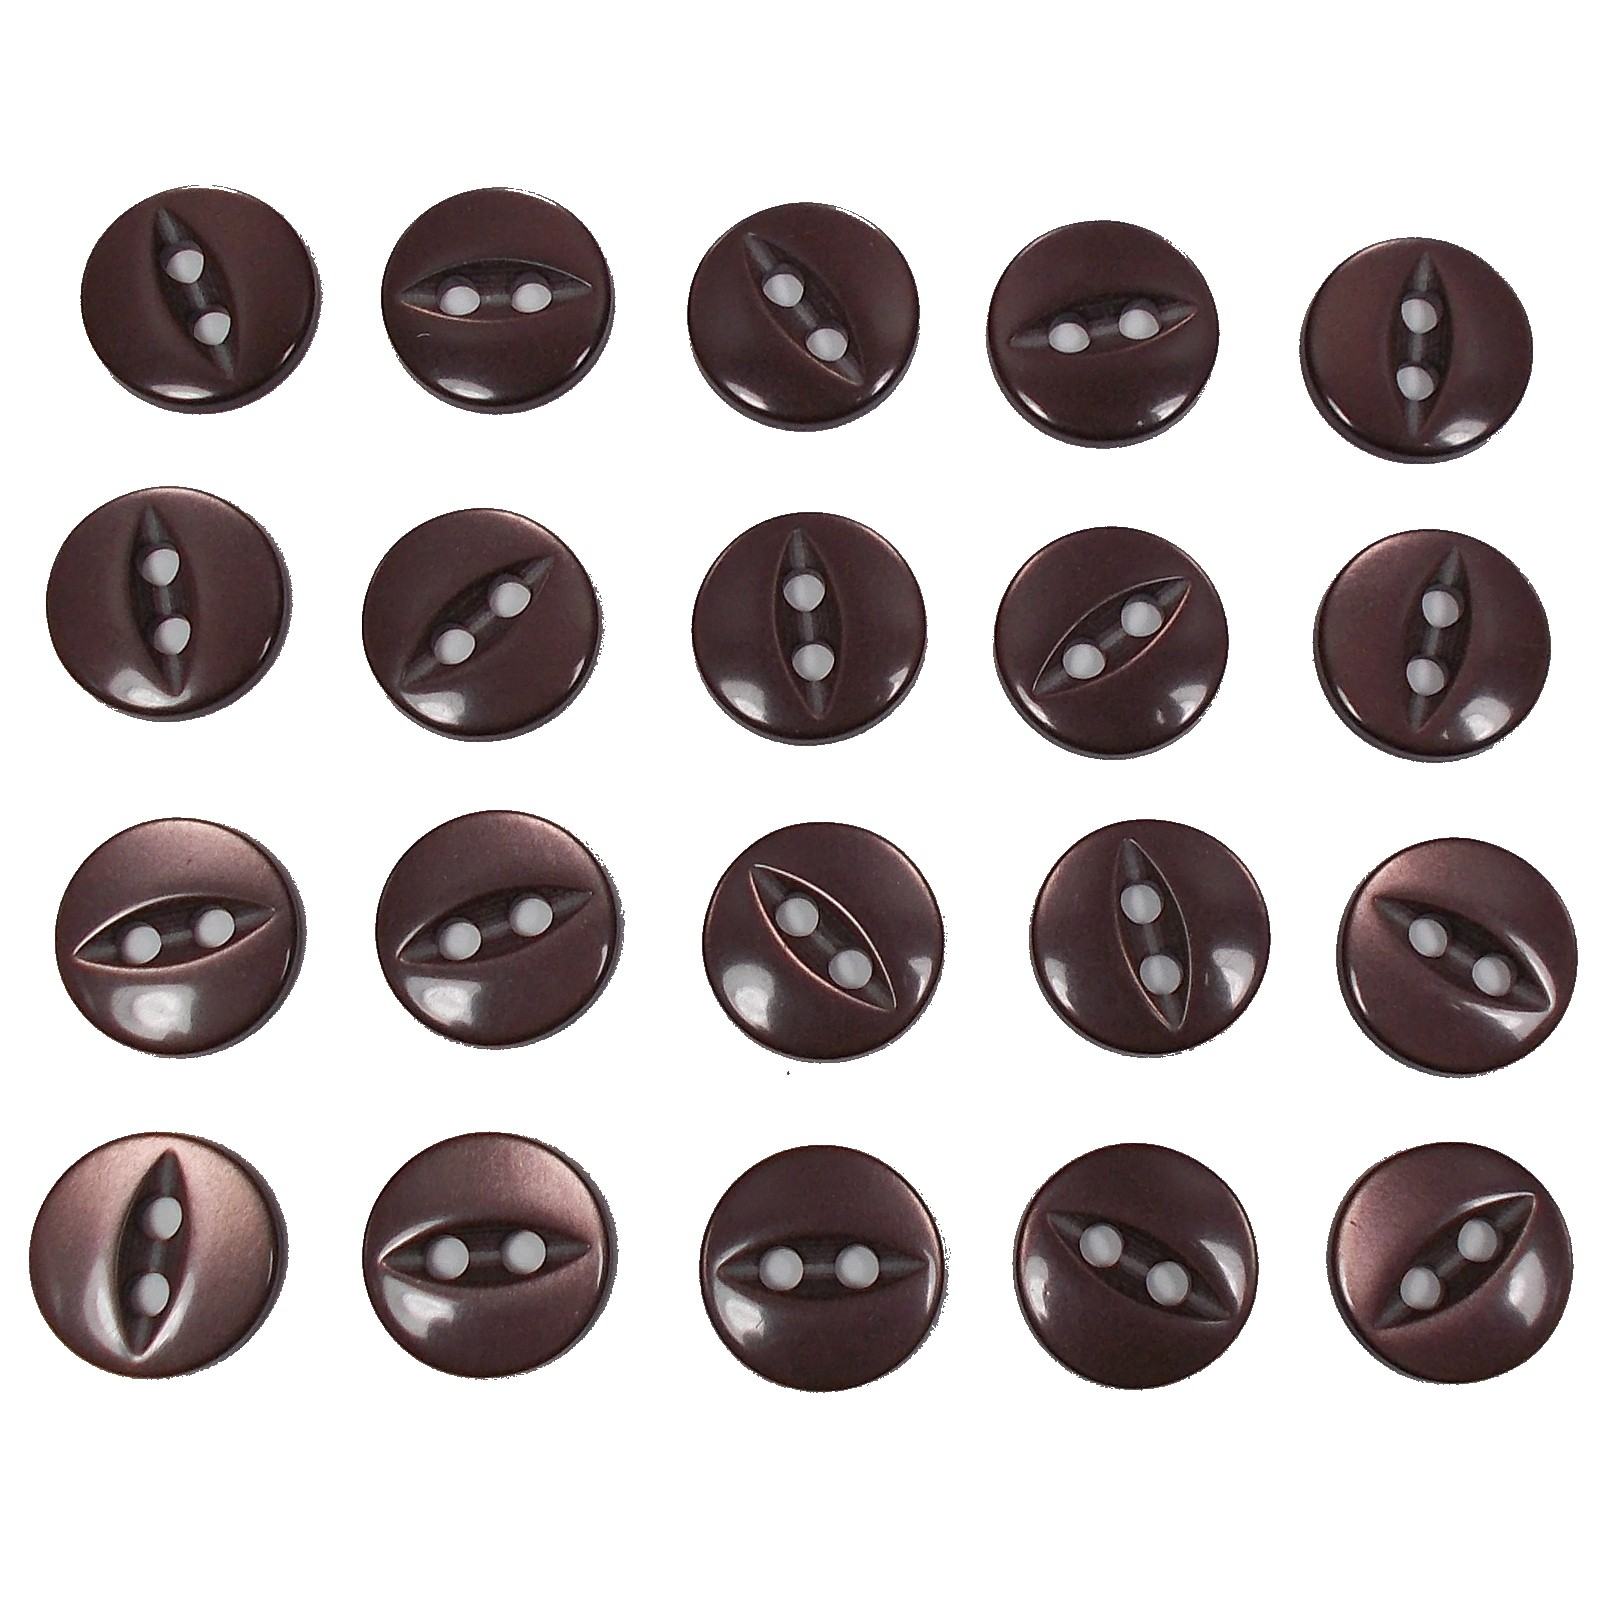 Fisheye Basic Buttons 16mm Brown Pack of 20